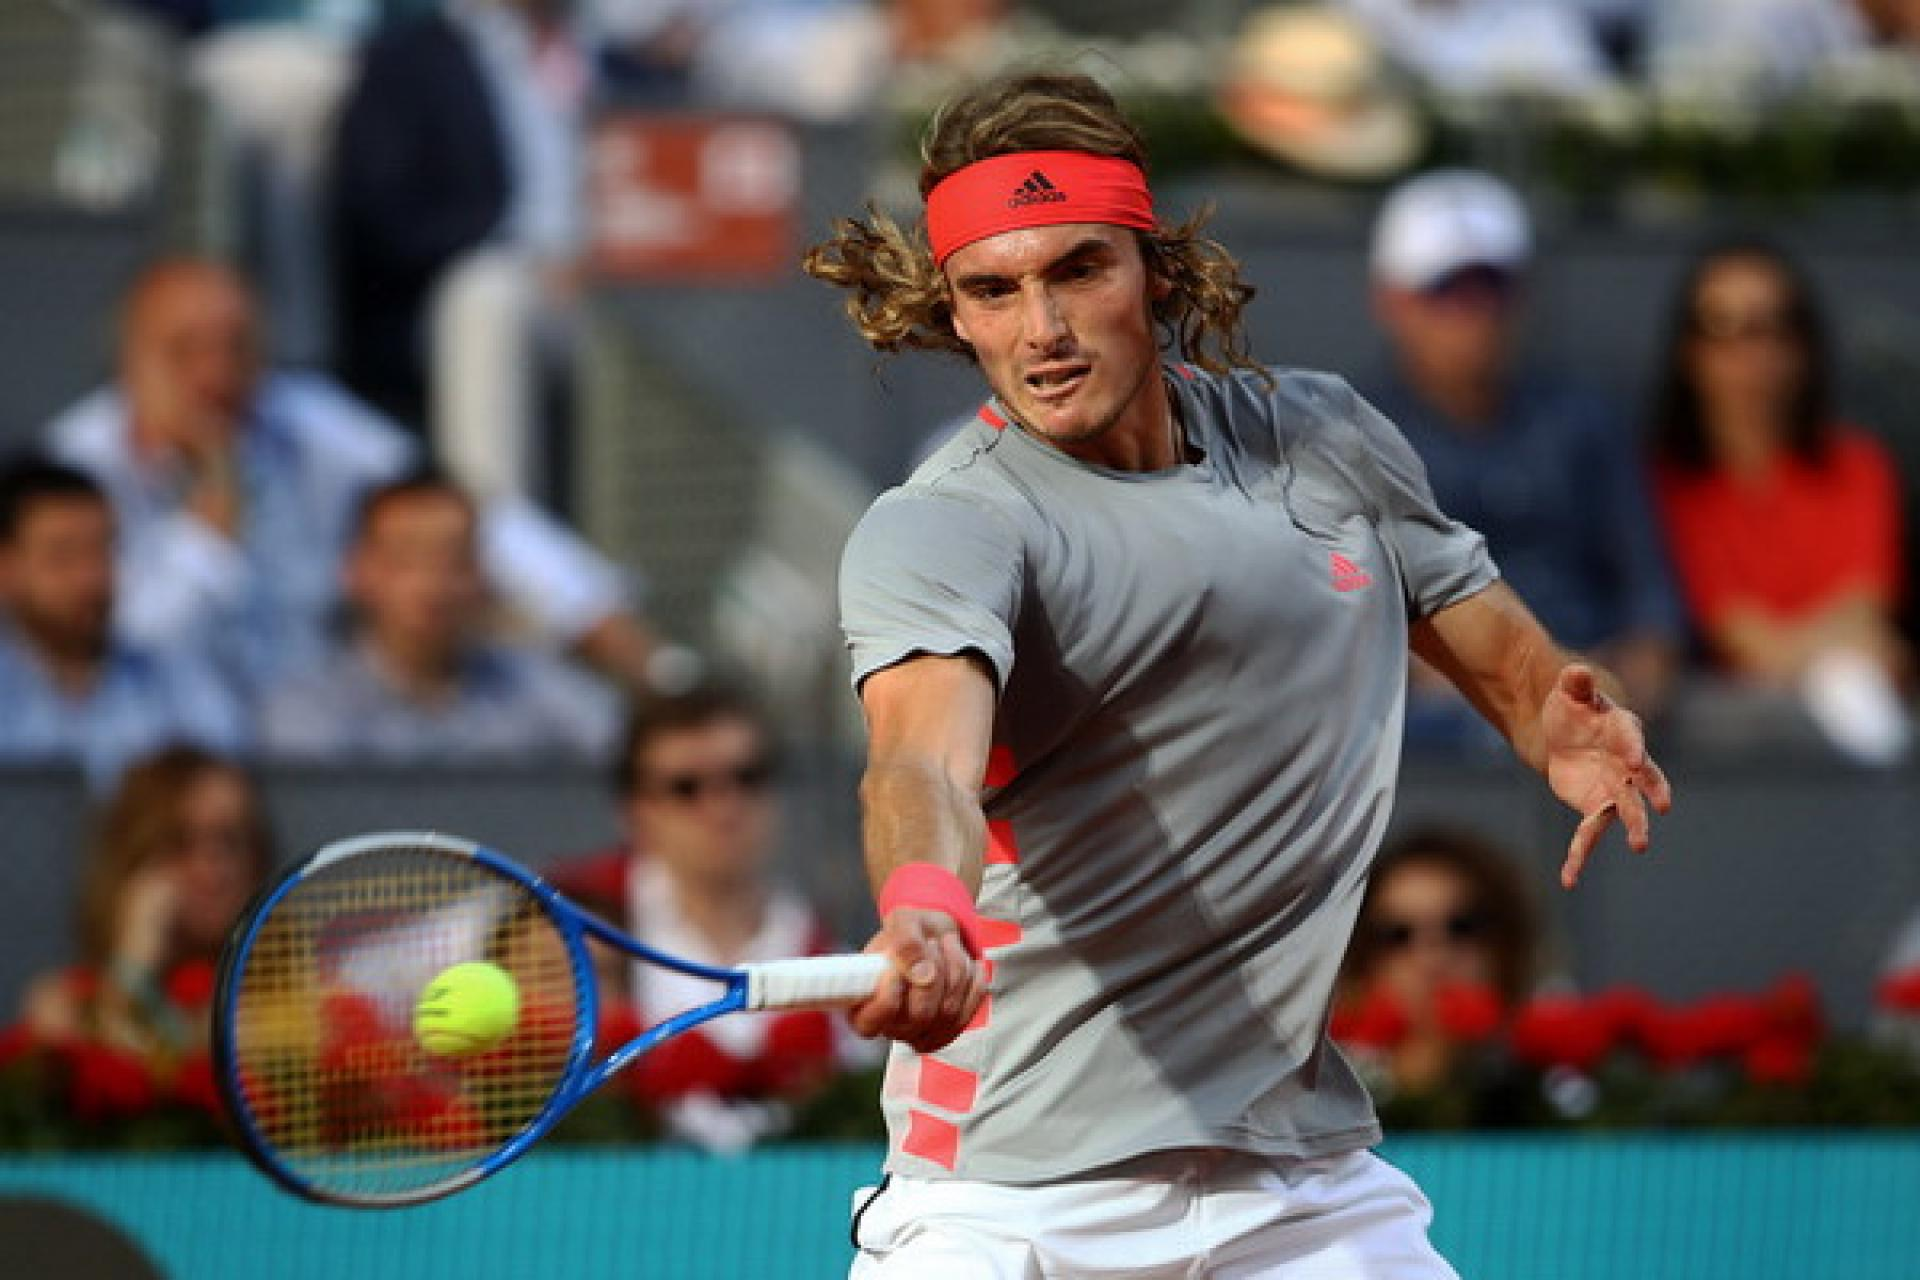 Tsitsipas On Federer's Return: It Brings Joy To The Players